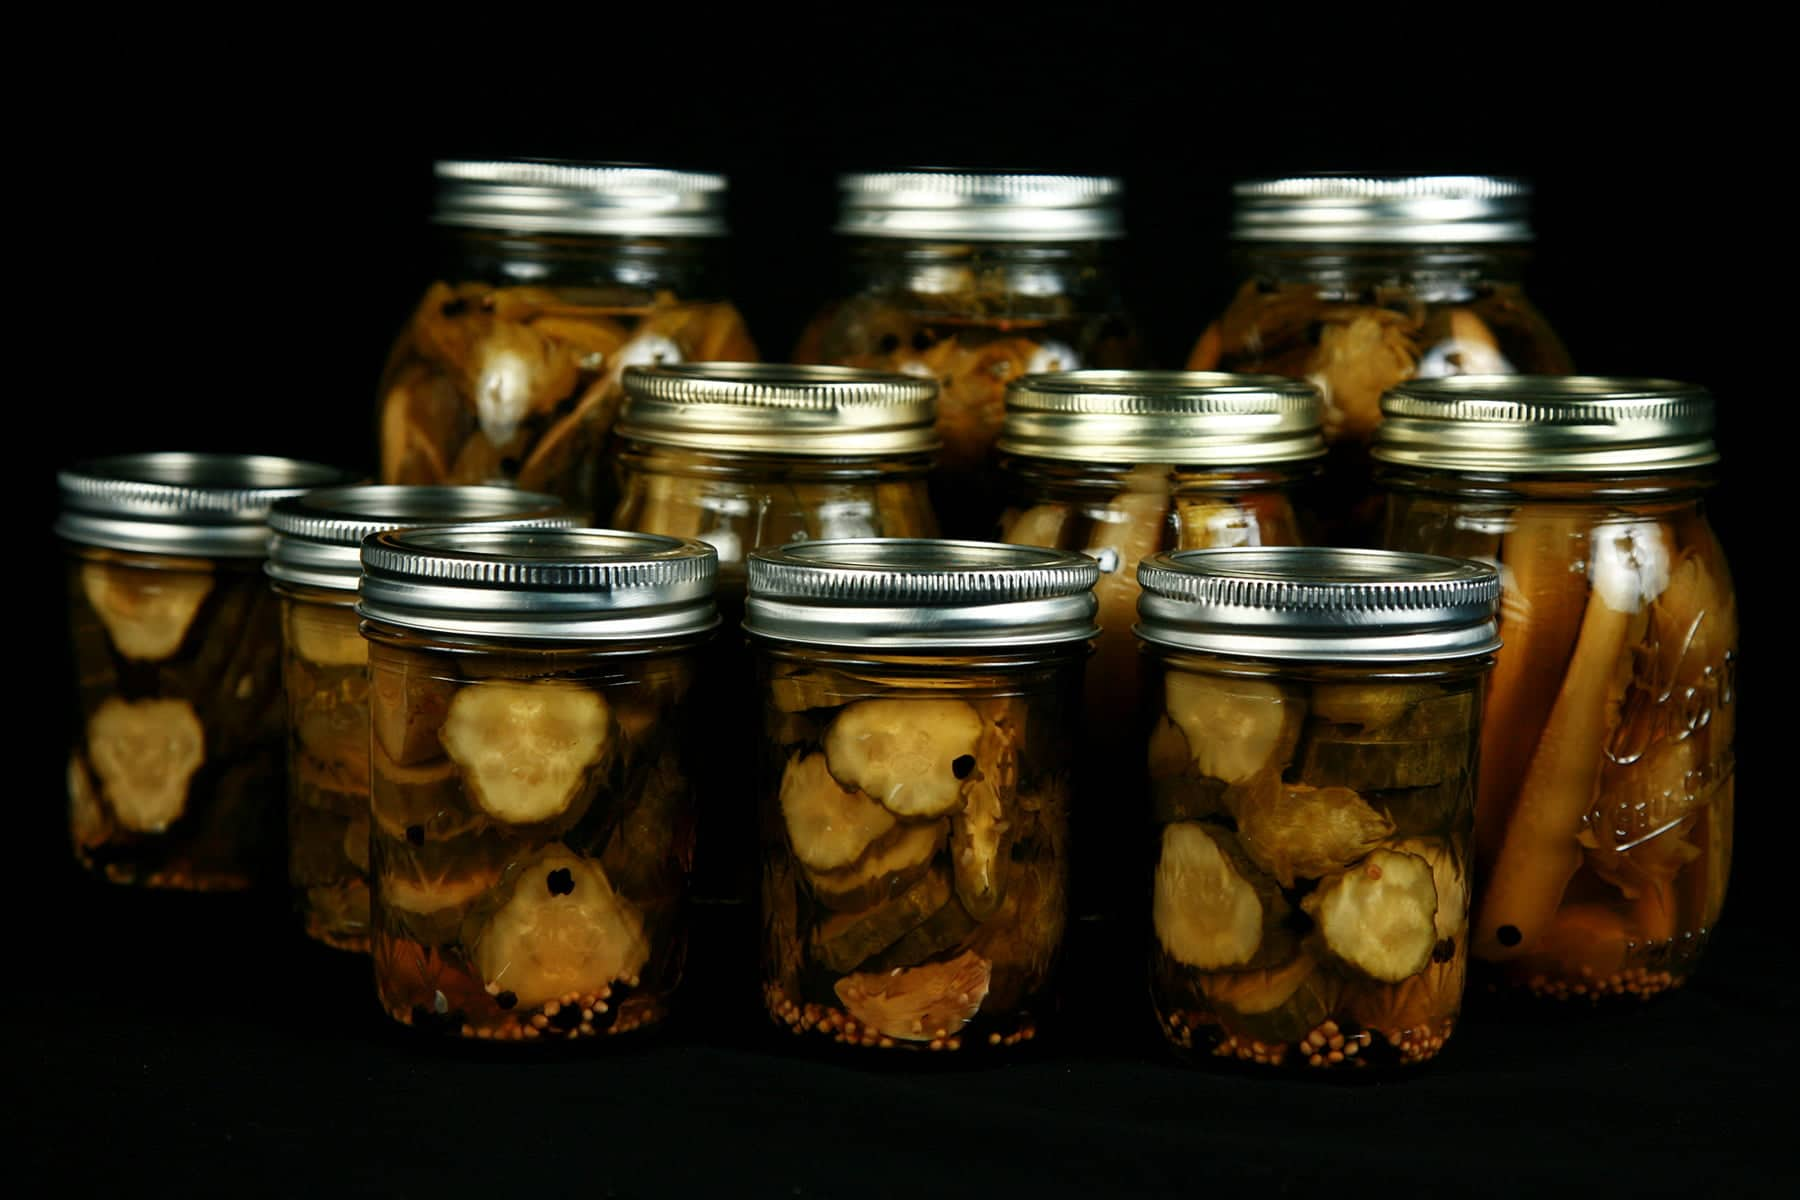 11 jars of hoppy IPA pickles in multiple rows, Hop flowers are visible in the jars, which are against a black background.